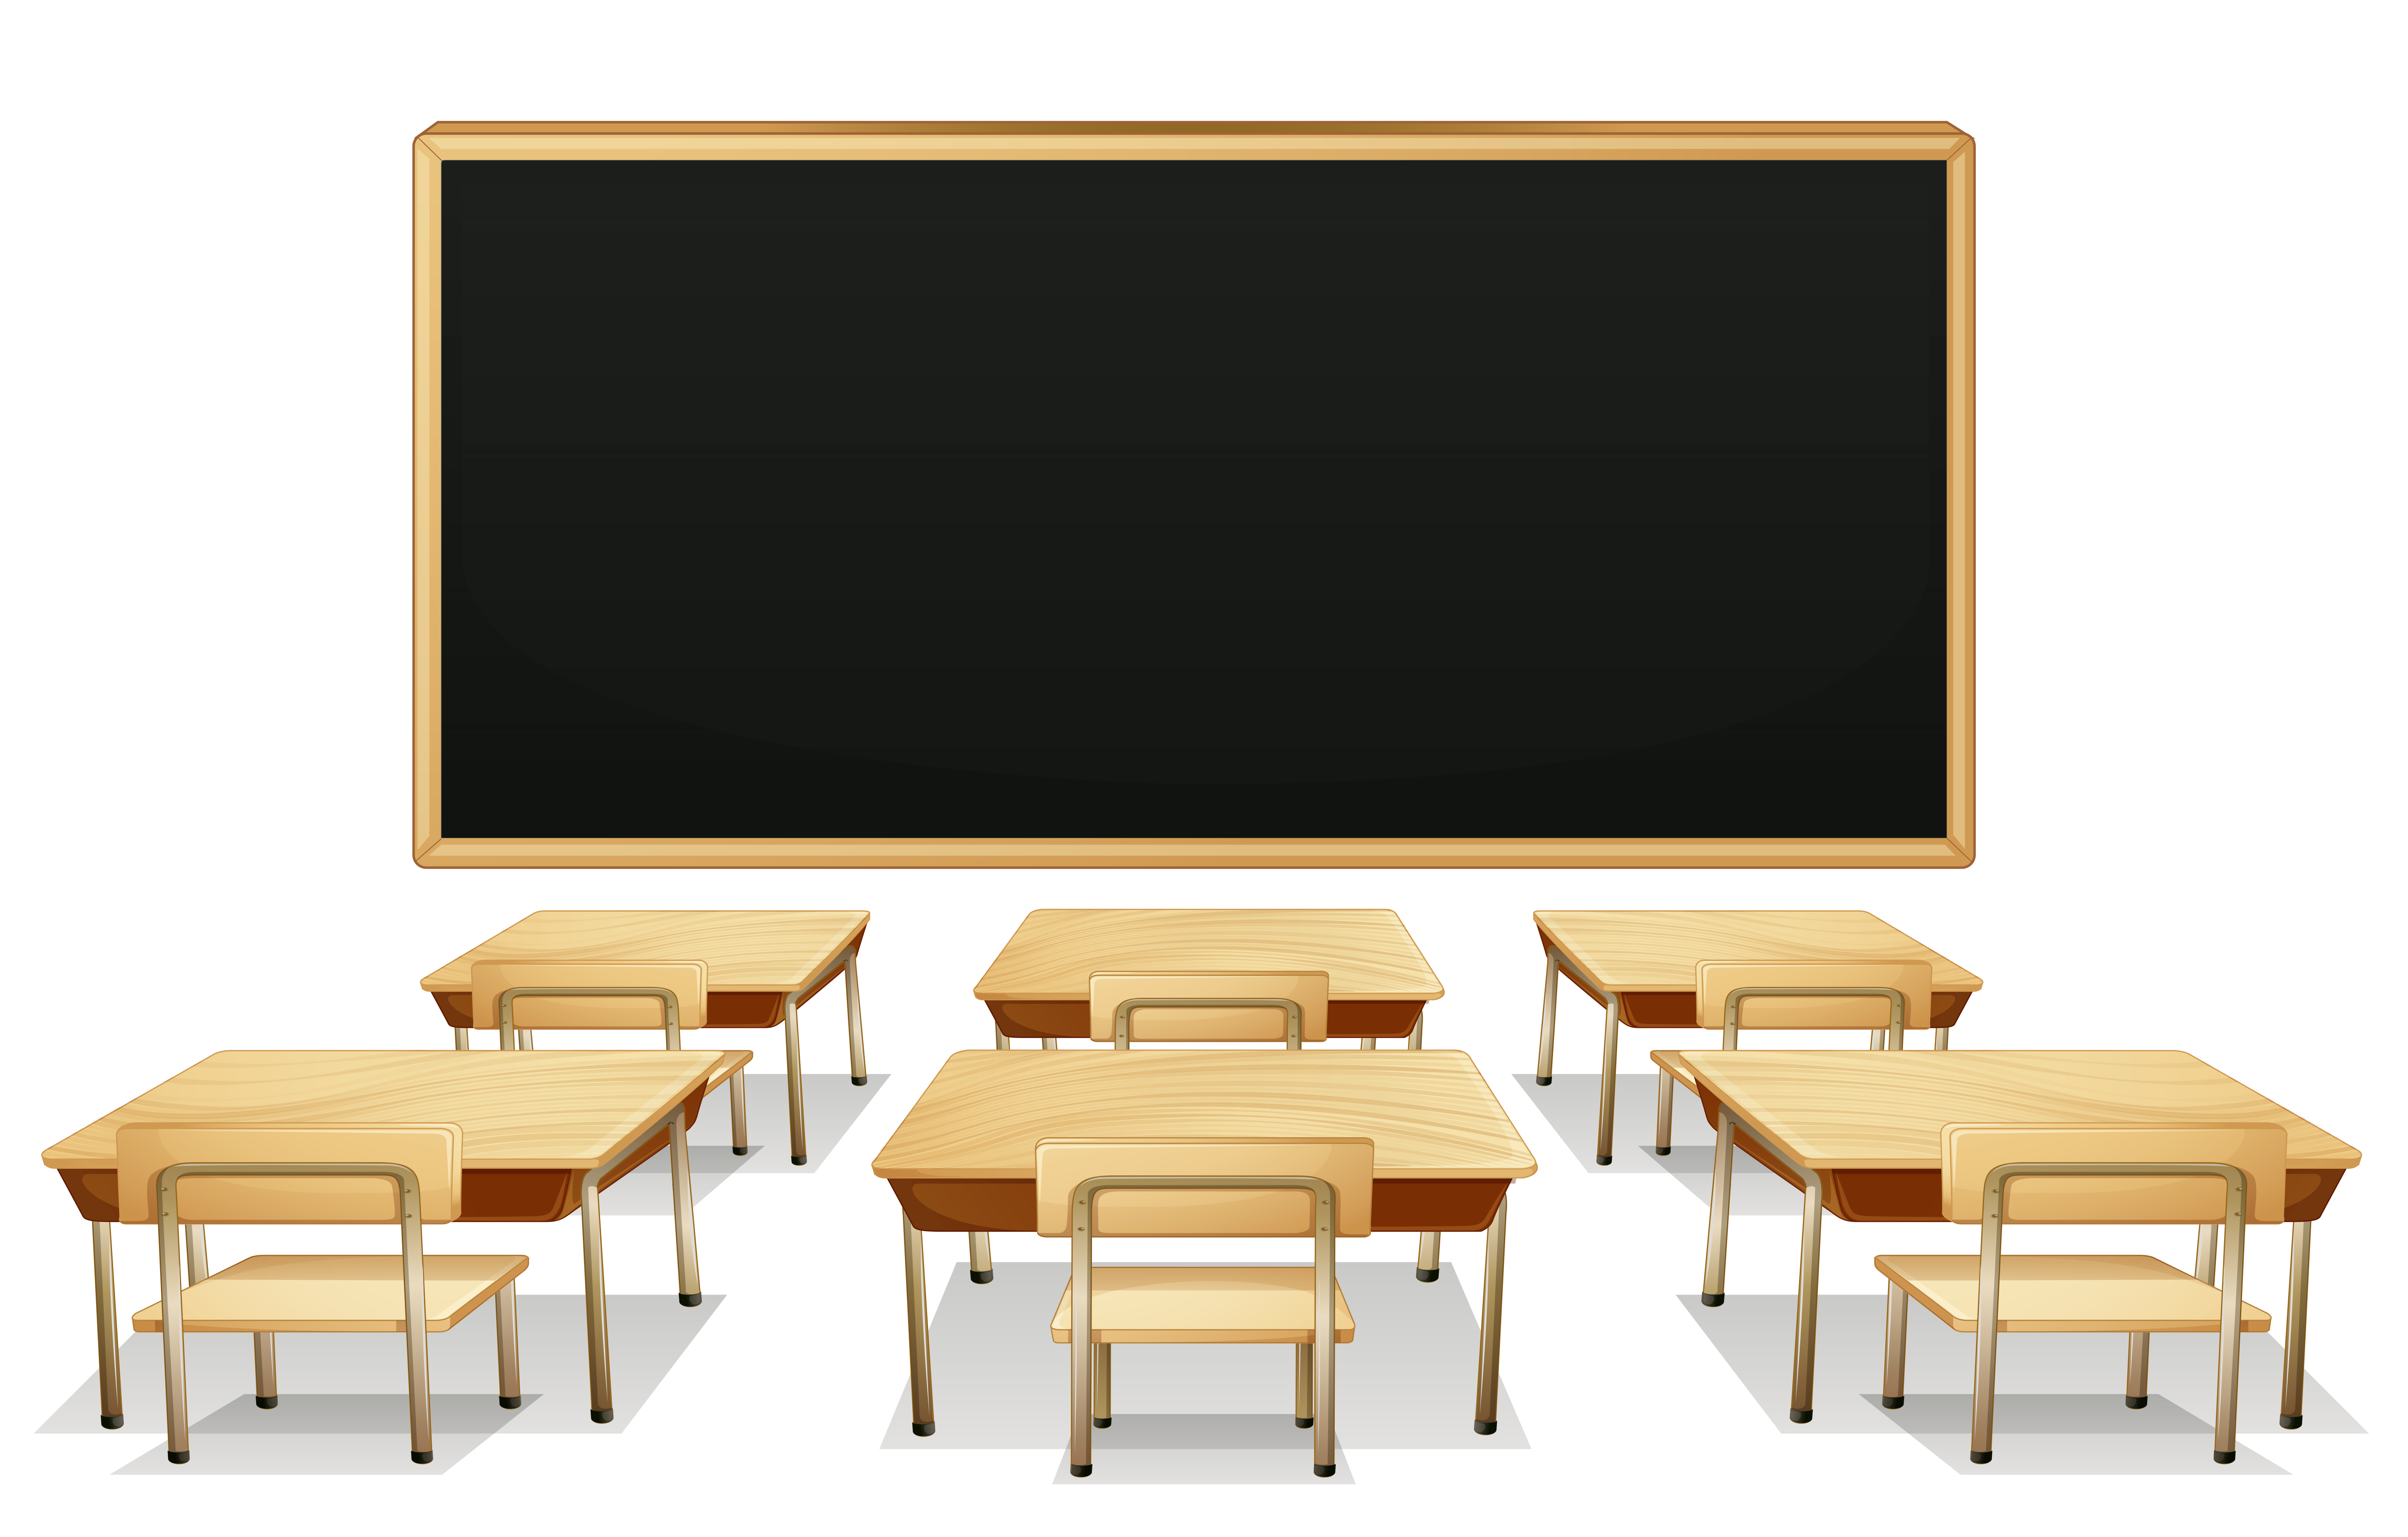 freeuse library Blackboard clipart high school classroom. With and desks png.